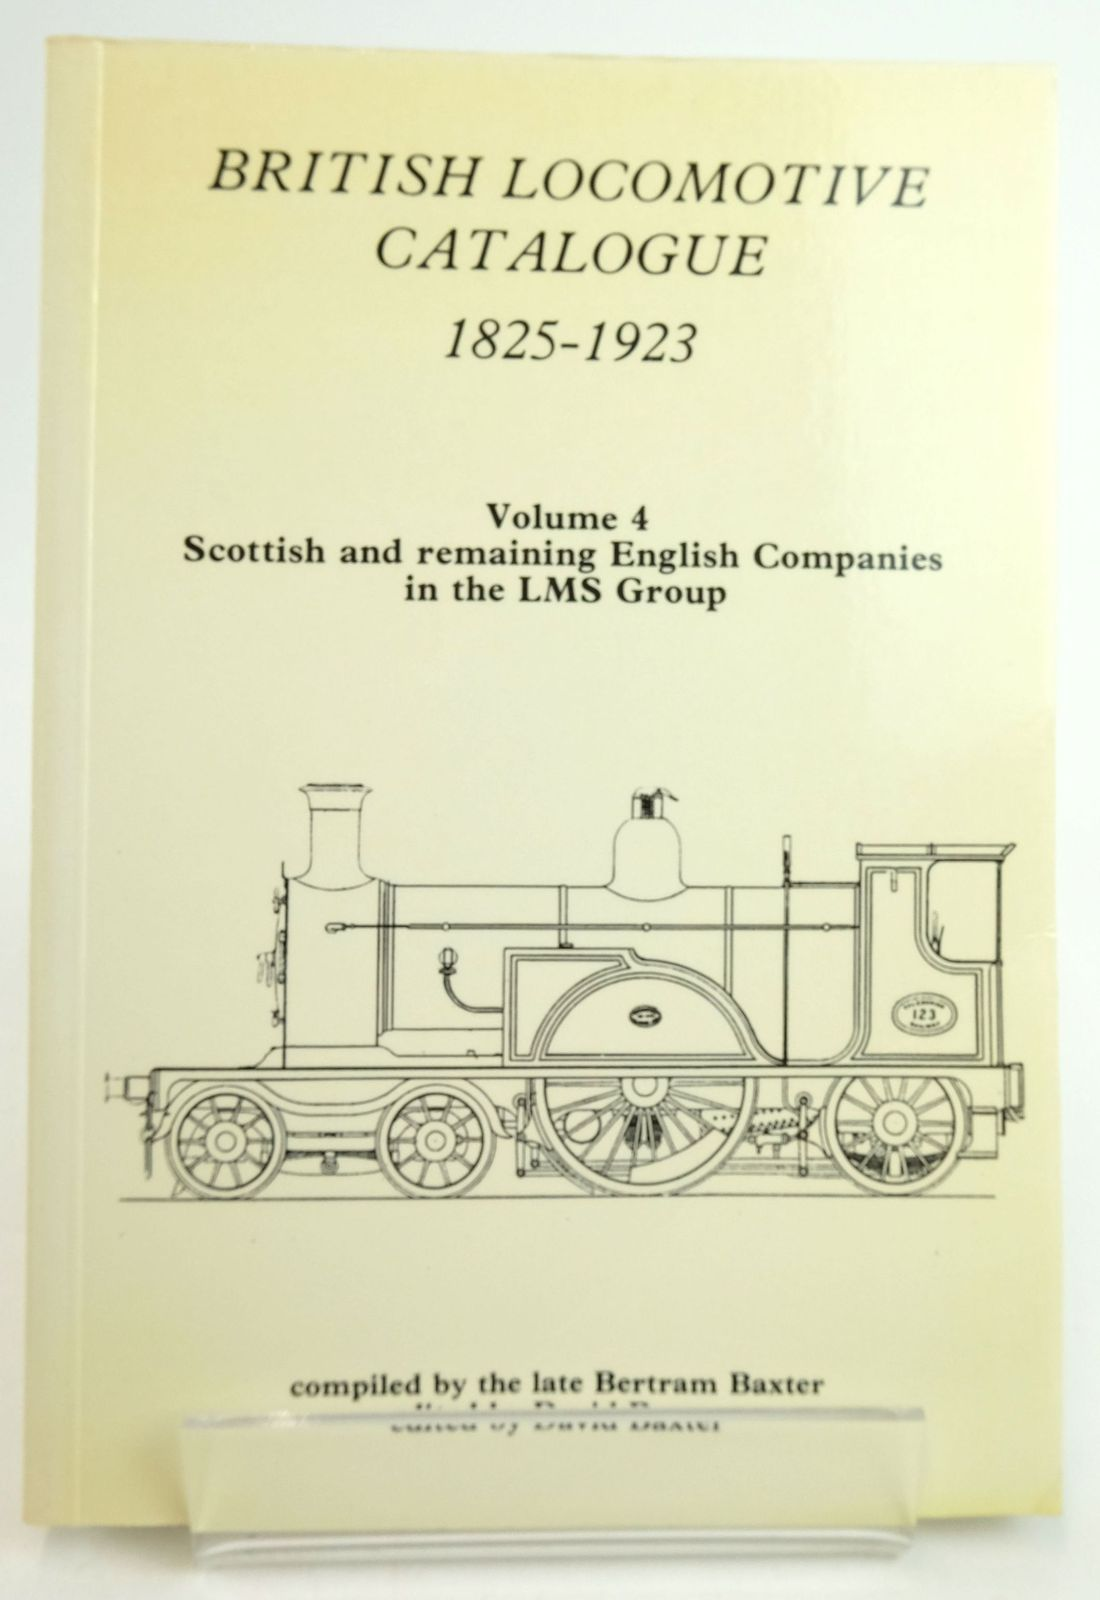 Photo of BRITISH LOCOMOTIVE CATALOGUE 1825-1923 VOLUME 4 - SCOTTISH AND REMAINING ENGLISH COMPANIES IN THE LMS GROUP written by Baxter, Bertram Baxter, David published by Moorland Publishing (STOCK CODE: 1819631)  for sale by Stella & Rose's Books